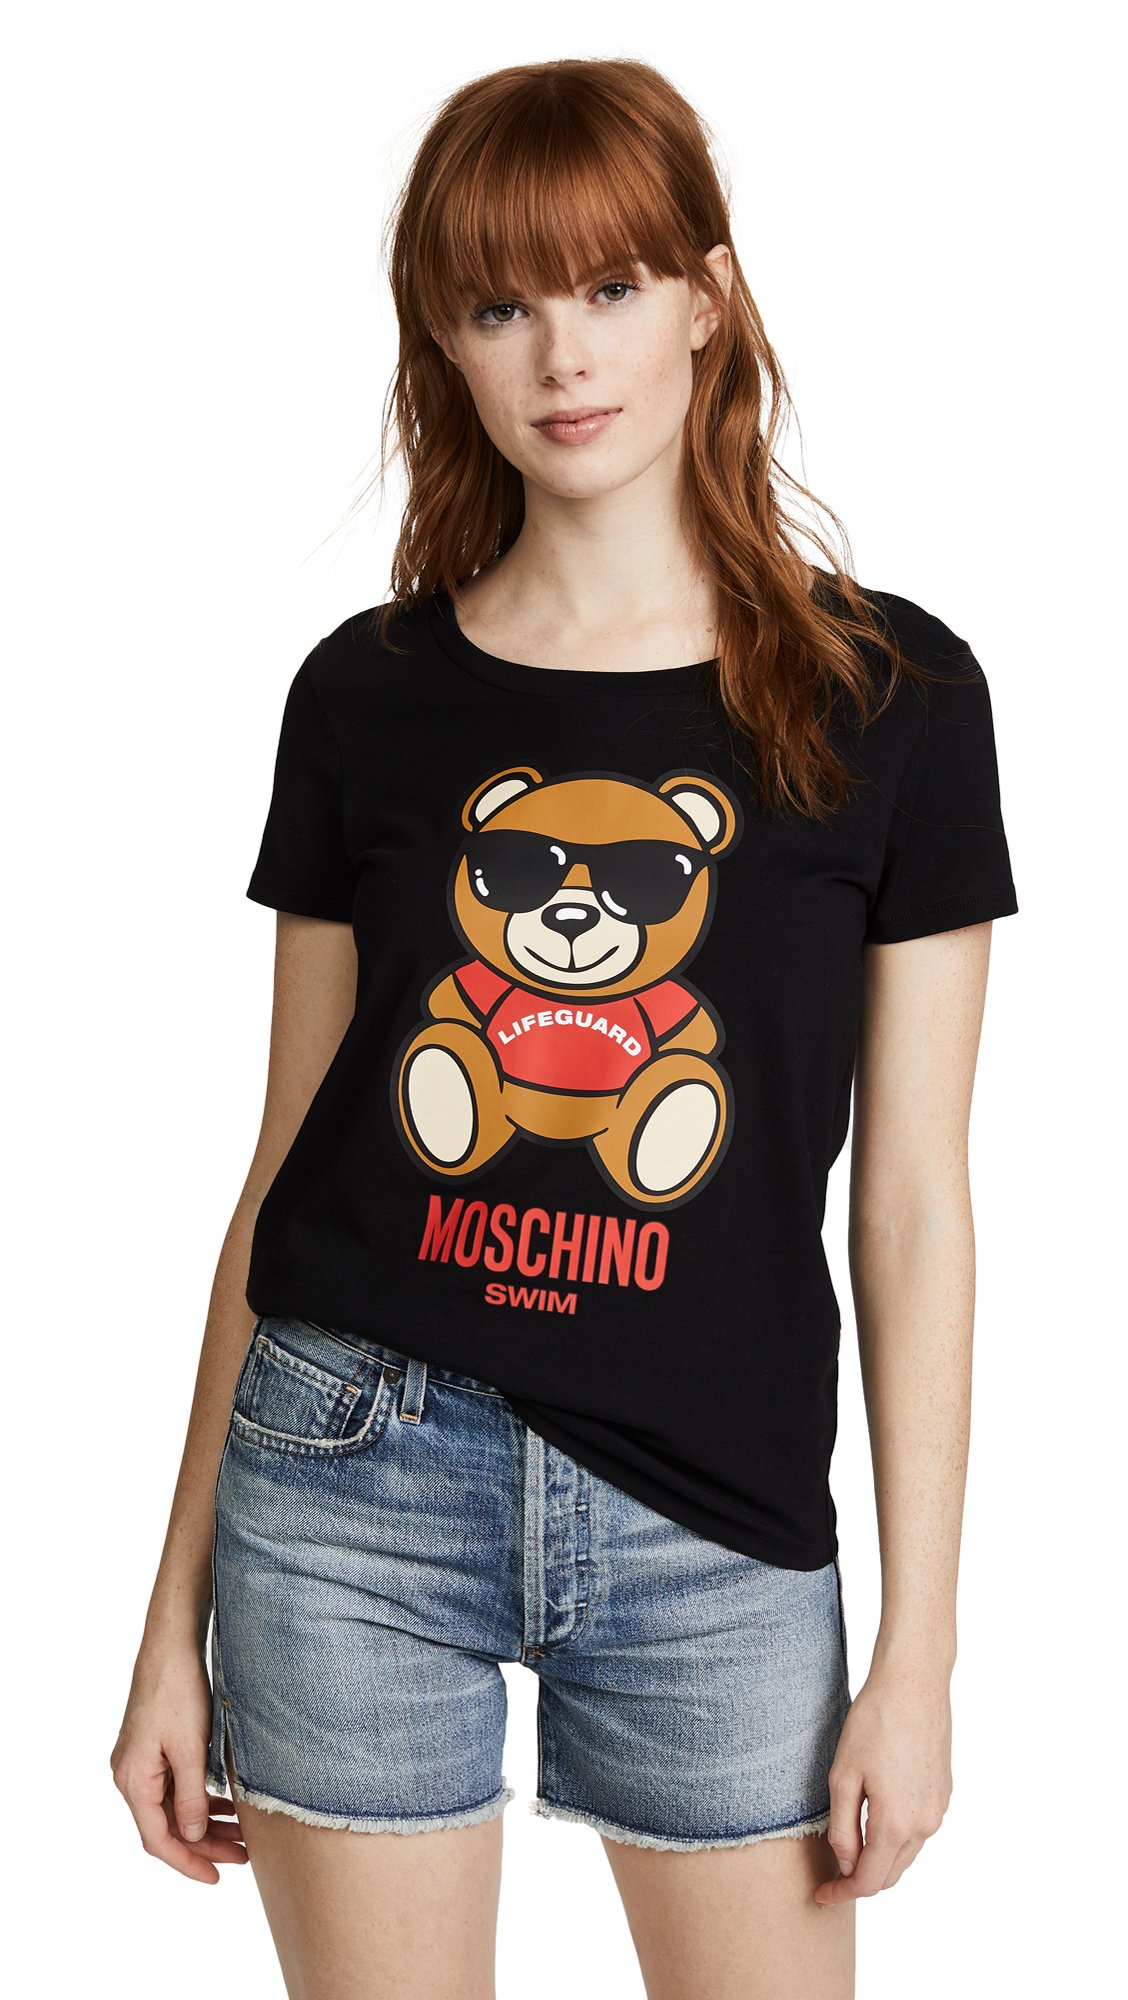 Moschino Women's Bear With Glasses Graphic Tee, Black, X-Small